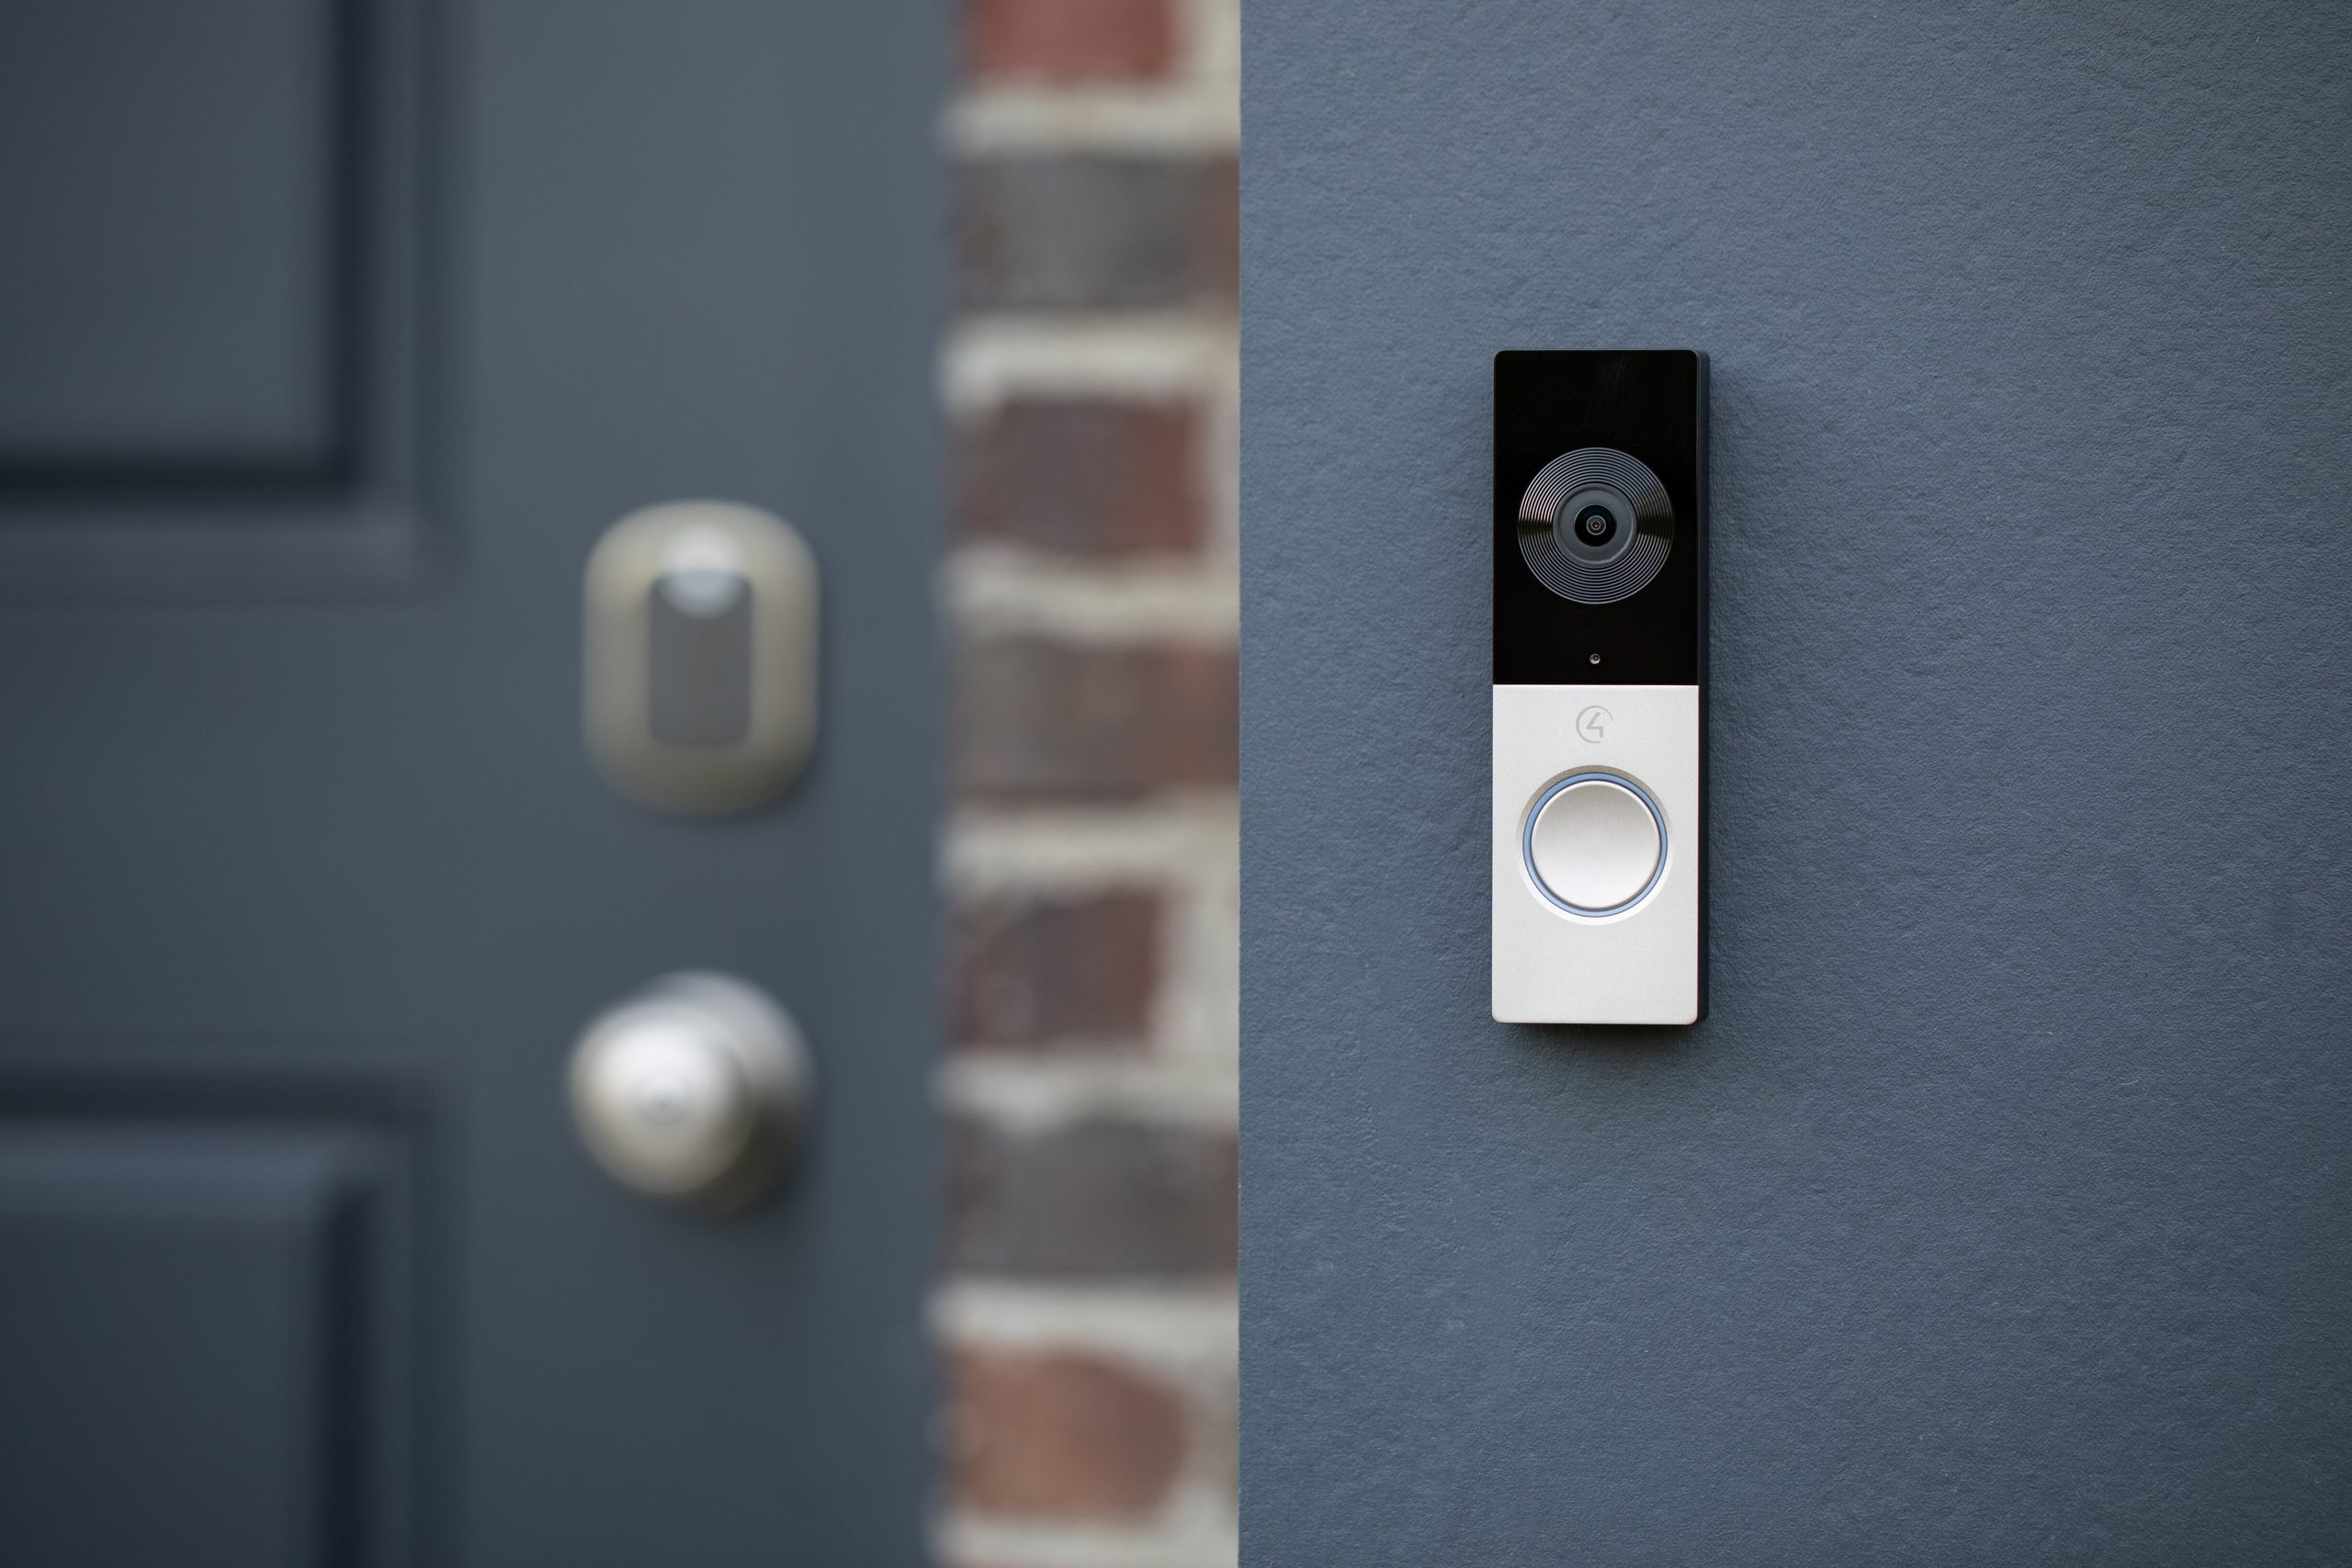 Chime video doorbell - Home Security page